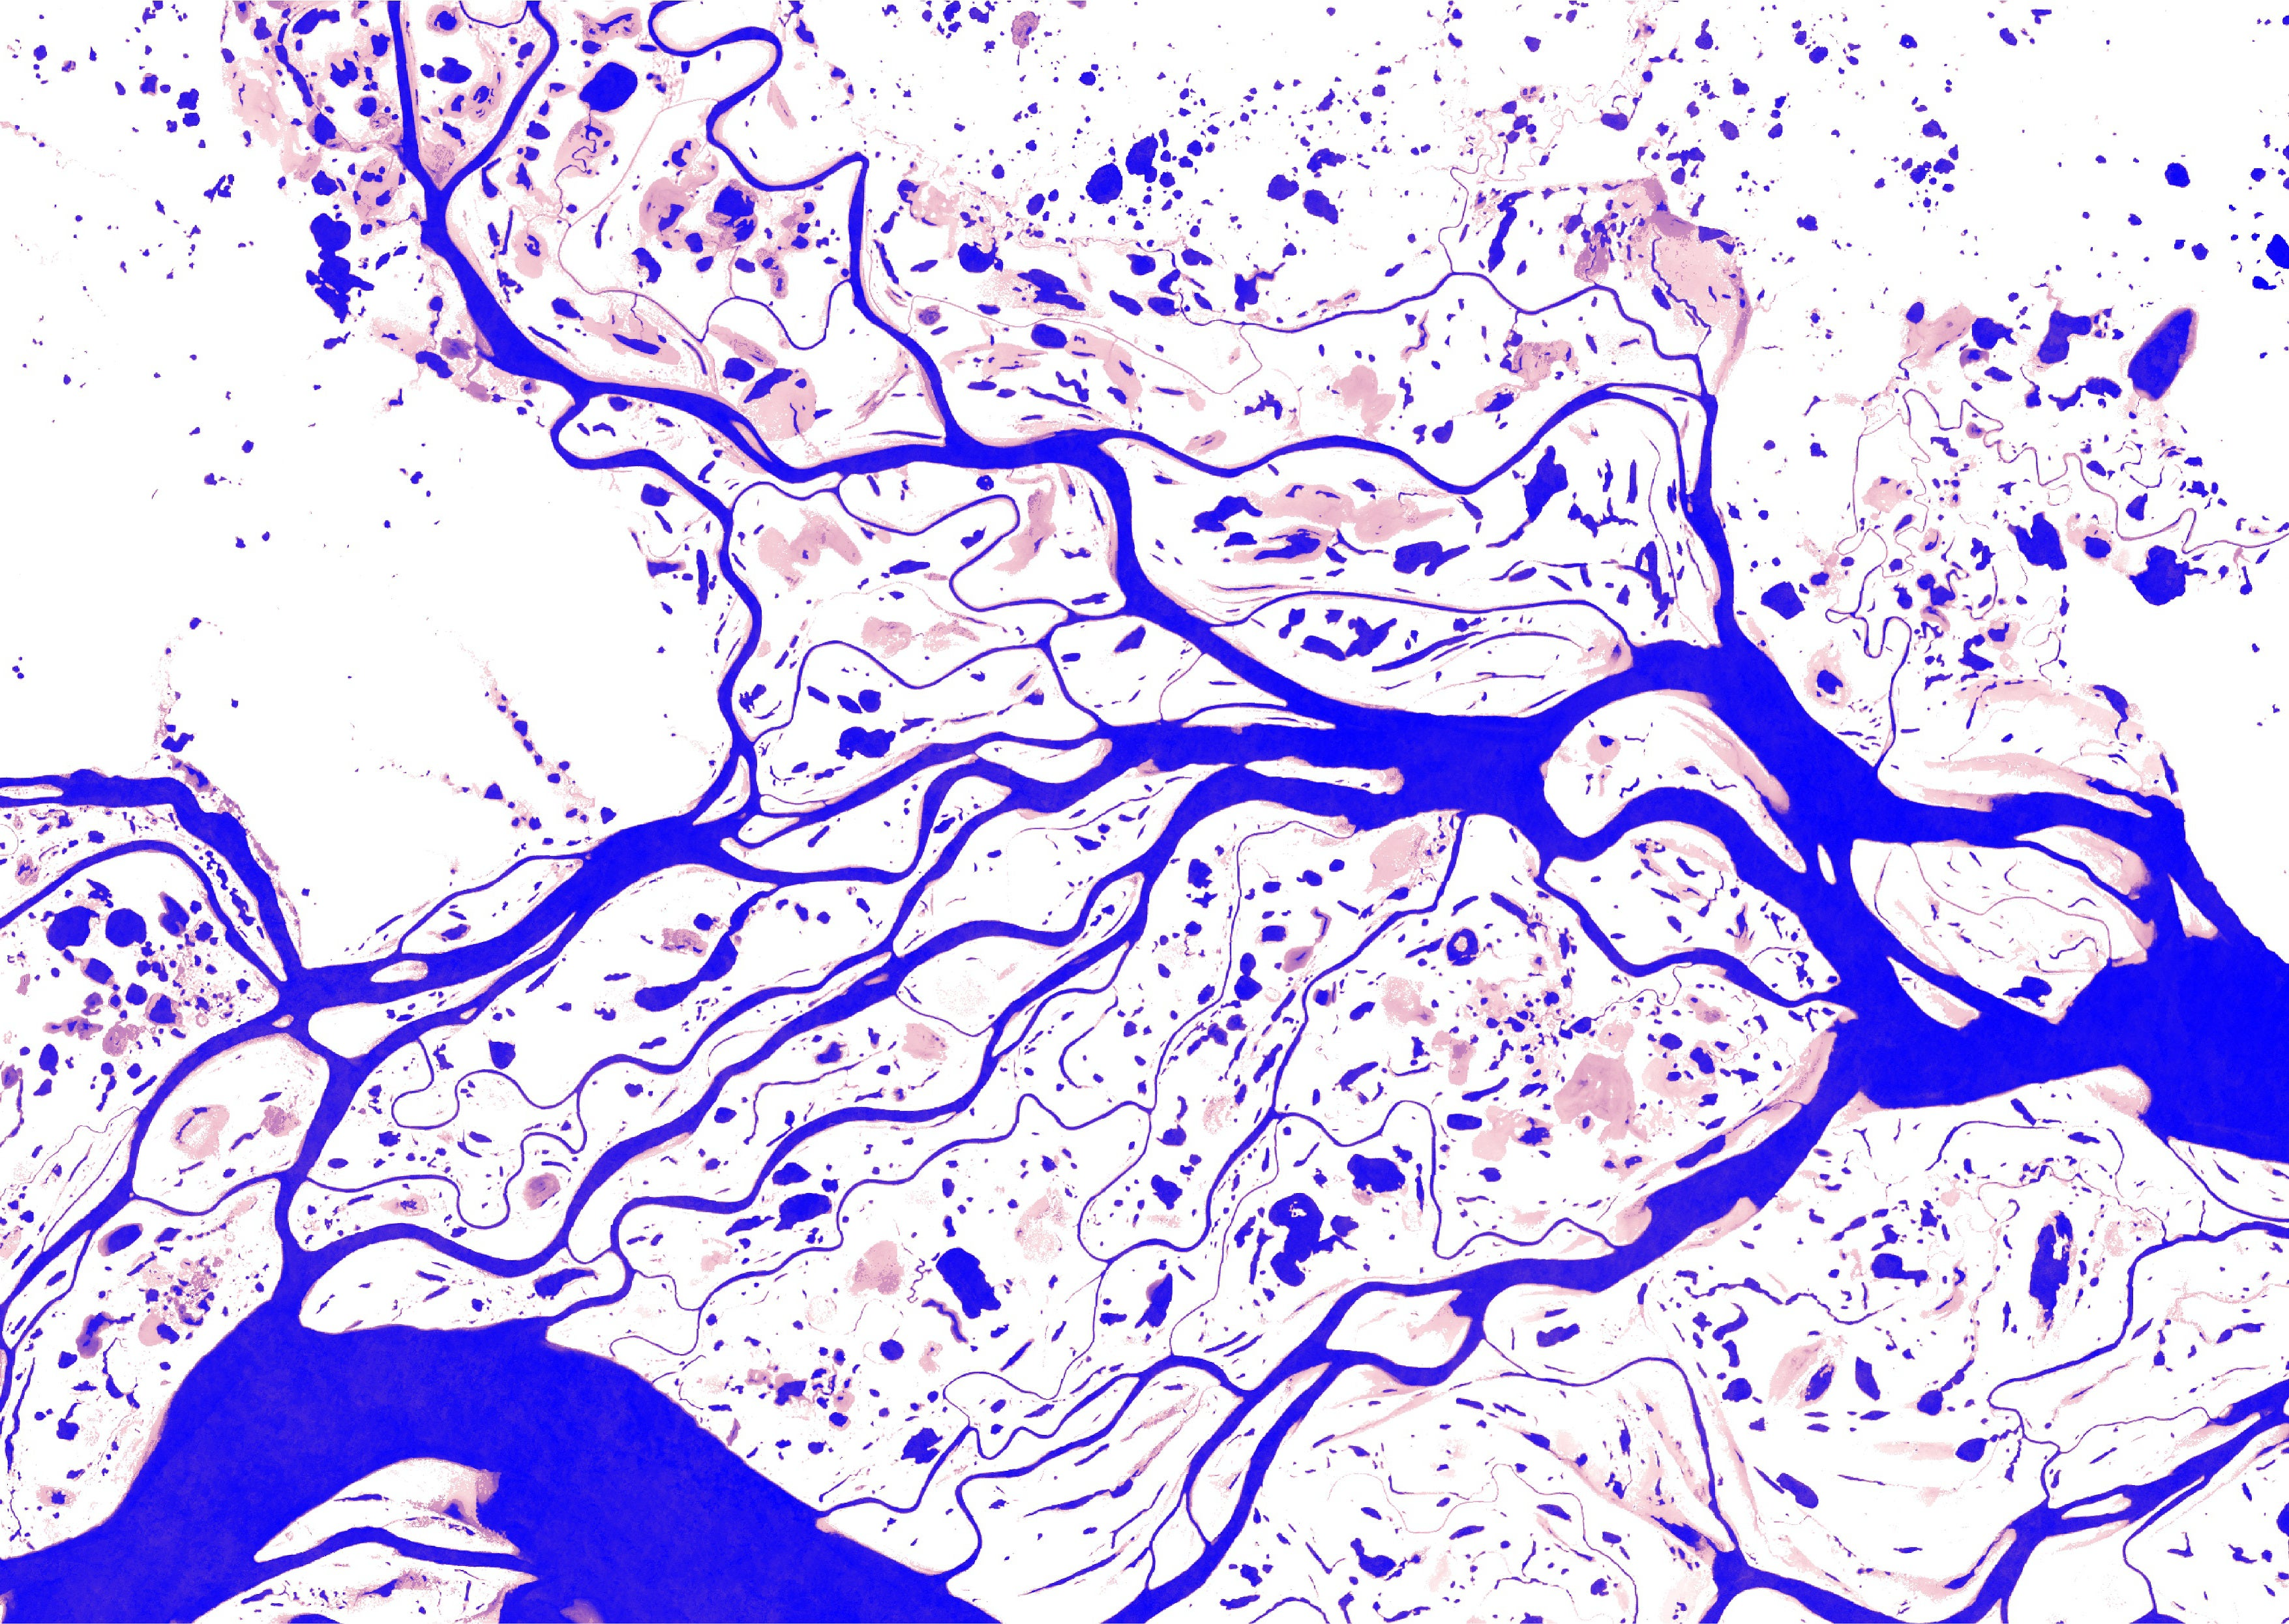 Gorgeous New Maps Show How Dramatically Our Planet's Surface Water on don river map, mackenzie river, dnieper river map, vilyuy river map, yukon river, amur river map, parana river map, middle mississippi river map, zaire river map, dnieper river, rhone river map, ural river map, euphrates river map, yangtze river, amu darya, indus river, saint lawrence river map, brahmaputra river, lake baikal, mississippi river, lower tunguska river map, world's longest river on map, ob river, amu darya river map, angara river map, volga river, indus river map, yellow river, niger river map, kara sea, ganges river map, lena river, chang river map,